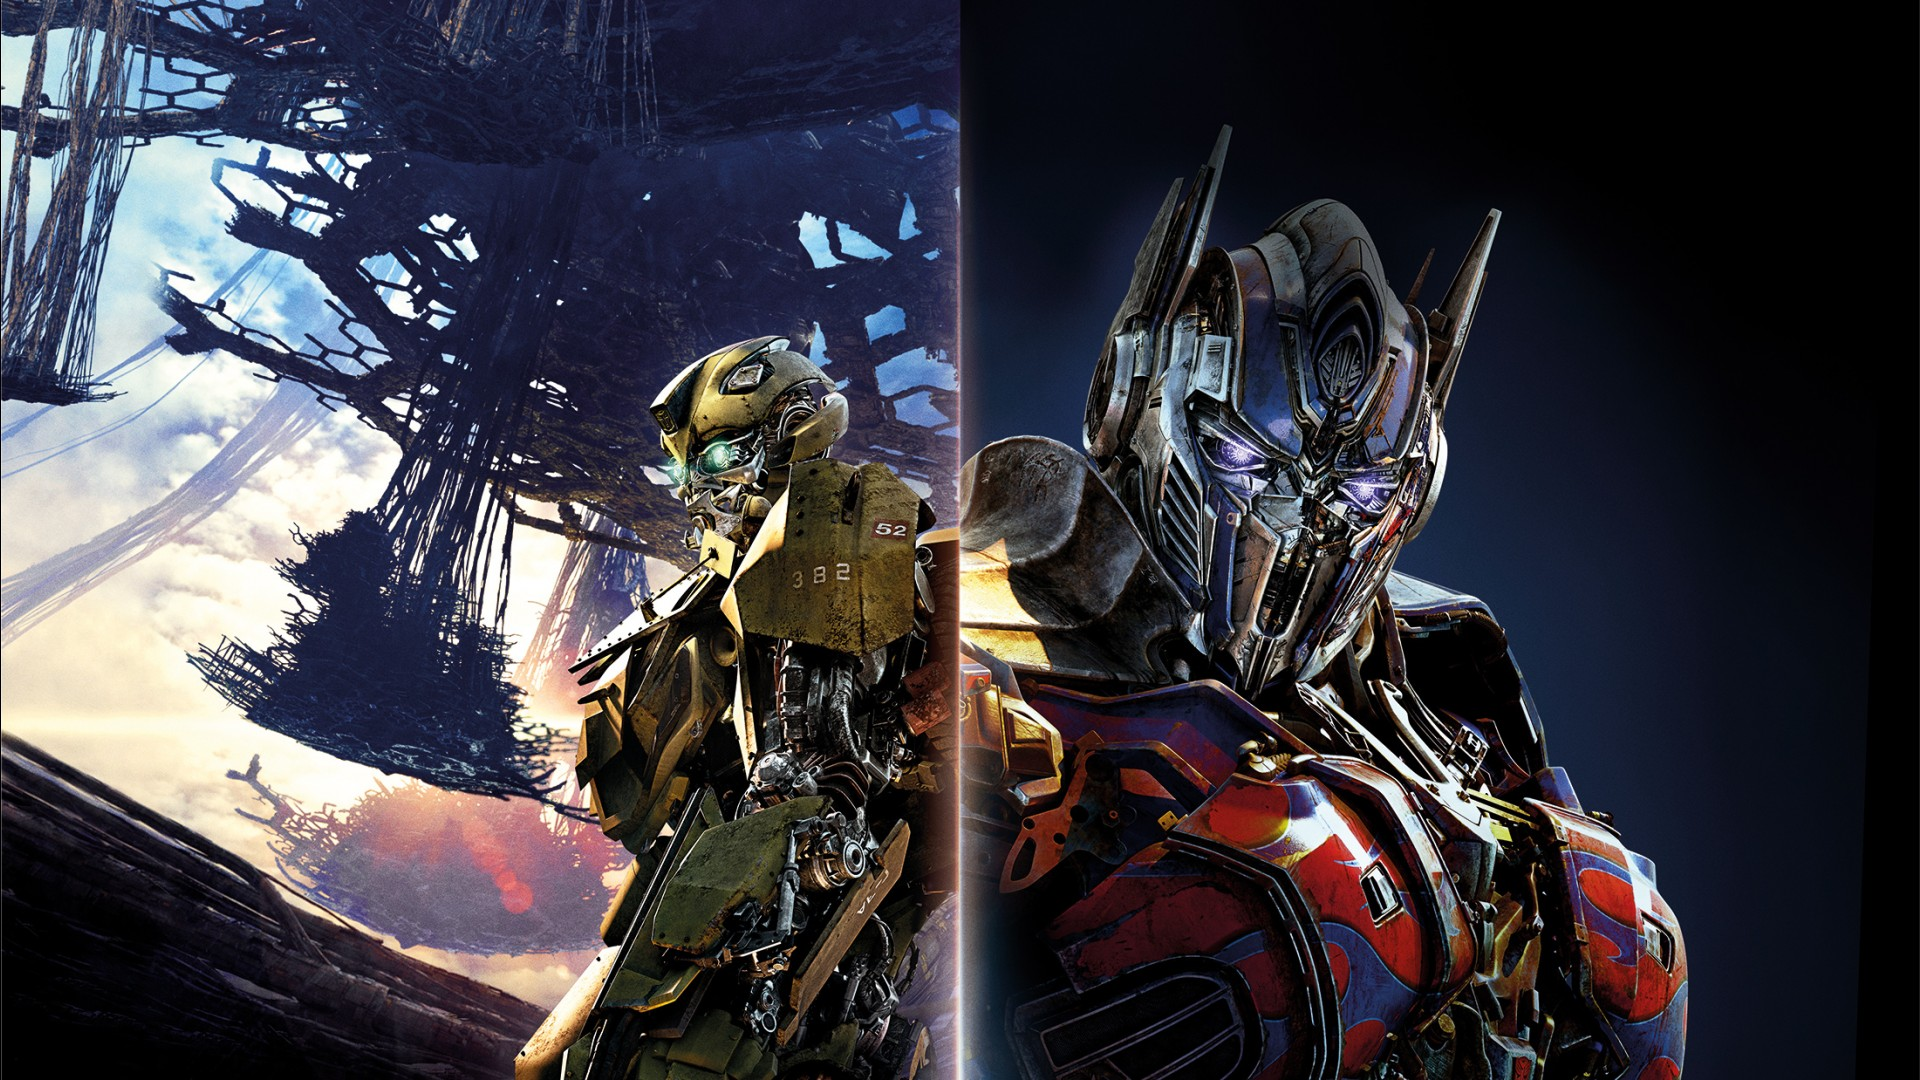 Kylo Ren Wallpaper Iphone X Bumblebee Optimus Prime Transformers The Last Knight